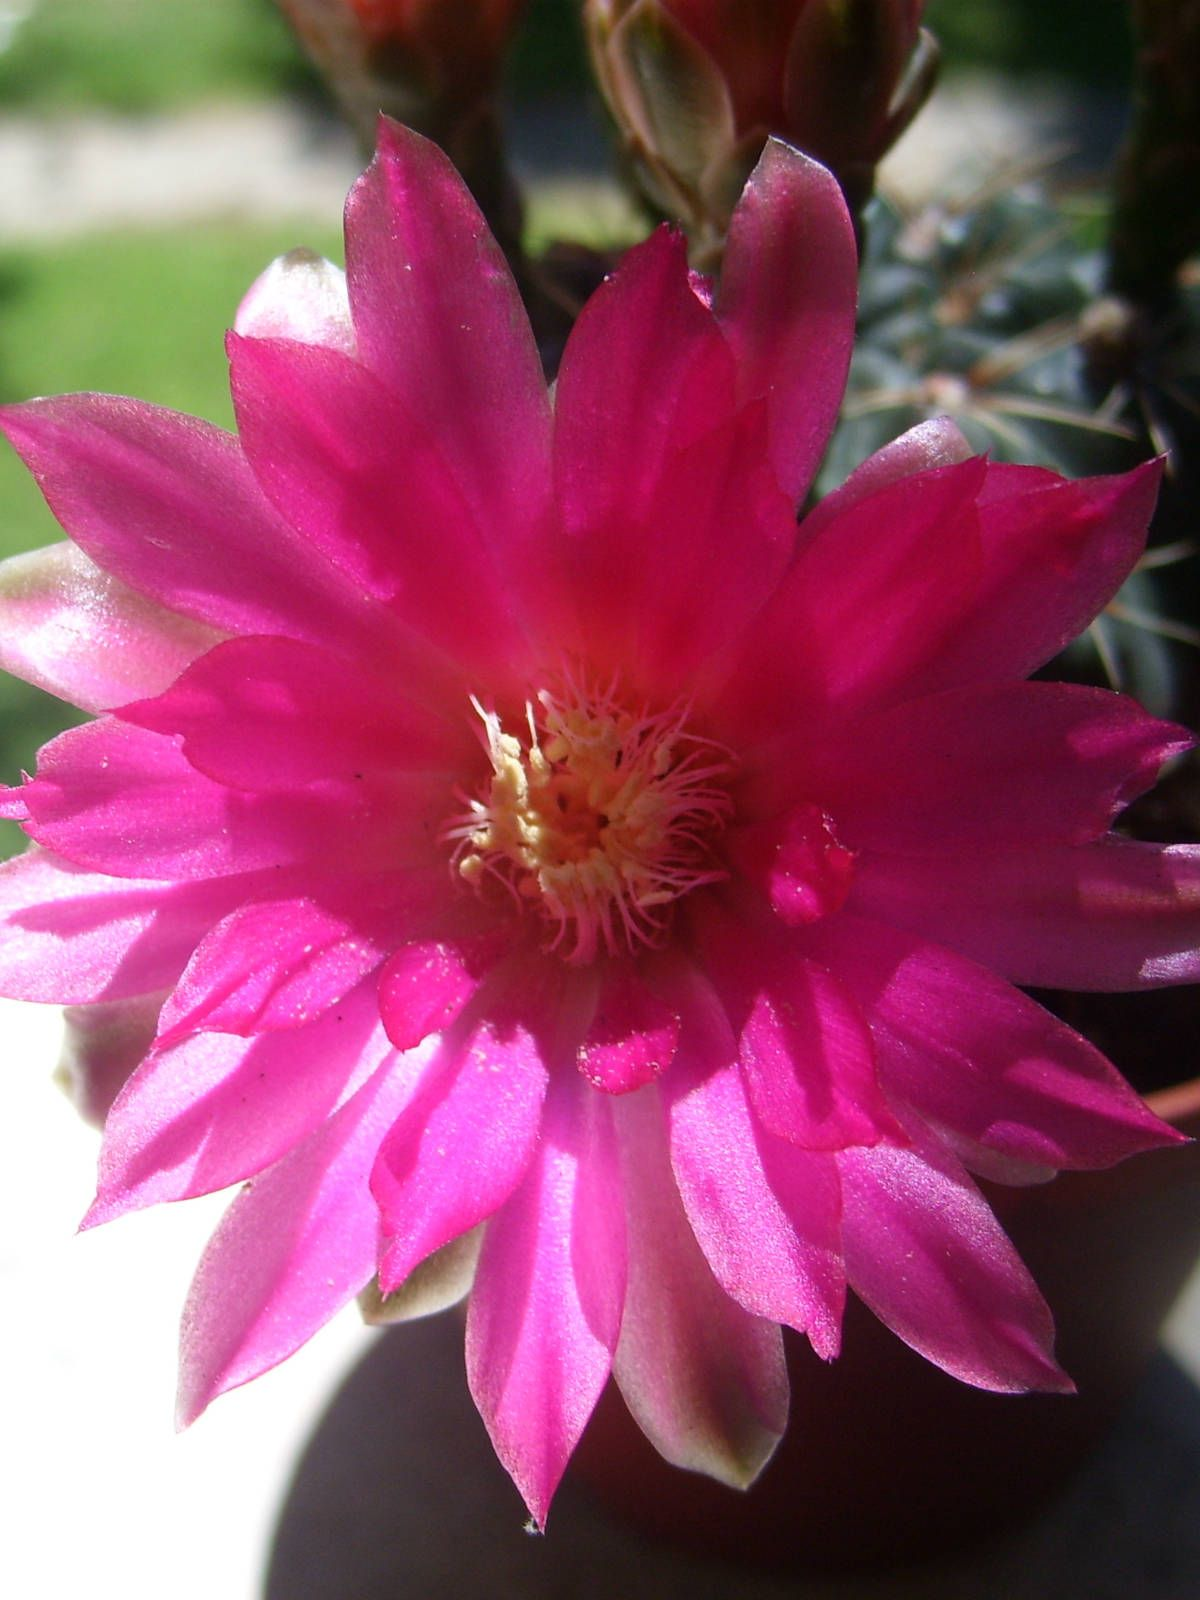 Gymnocalycium baldianum dwarf chin cactus plant characteristics gymnocalycium baldianum dwarf chin cactus is a small cactus with solitary flattened globose stem usually unbranched mightylinksfo Images